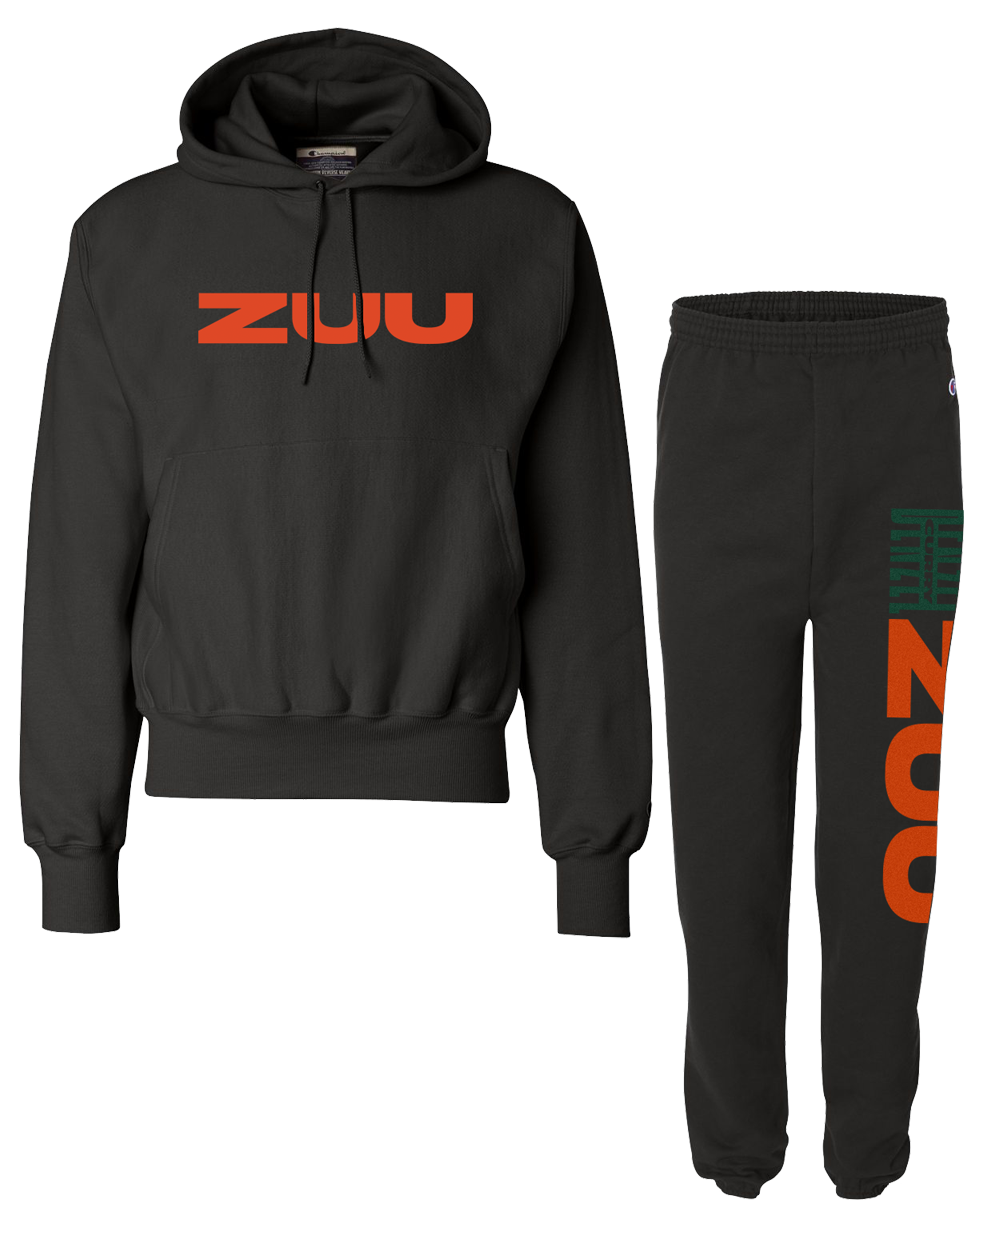 ZUU FLEECE BUNDLE